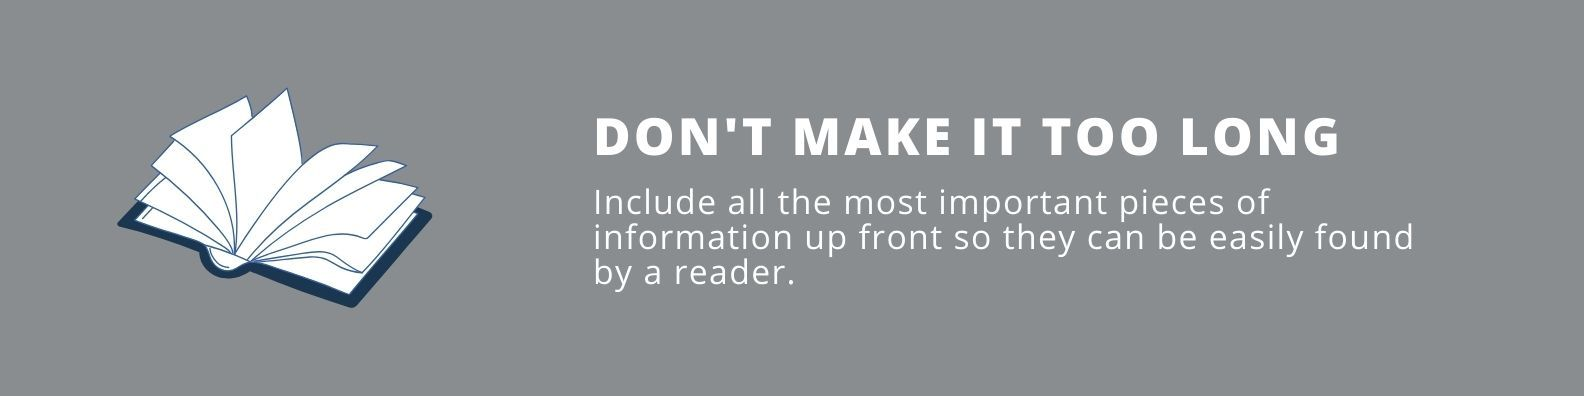 Don't make it too long or bury important details.